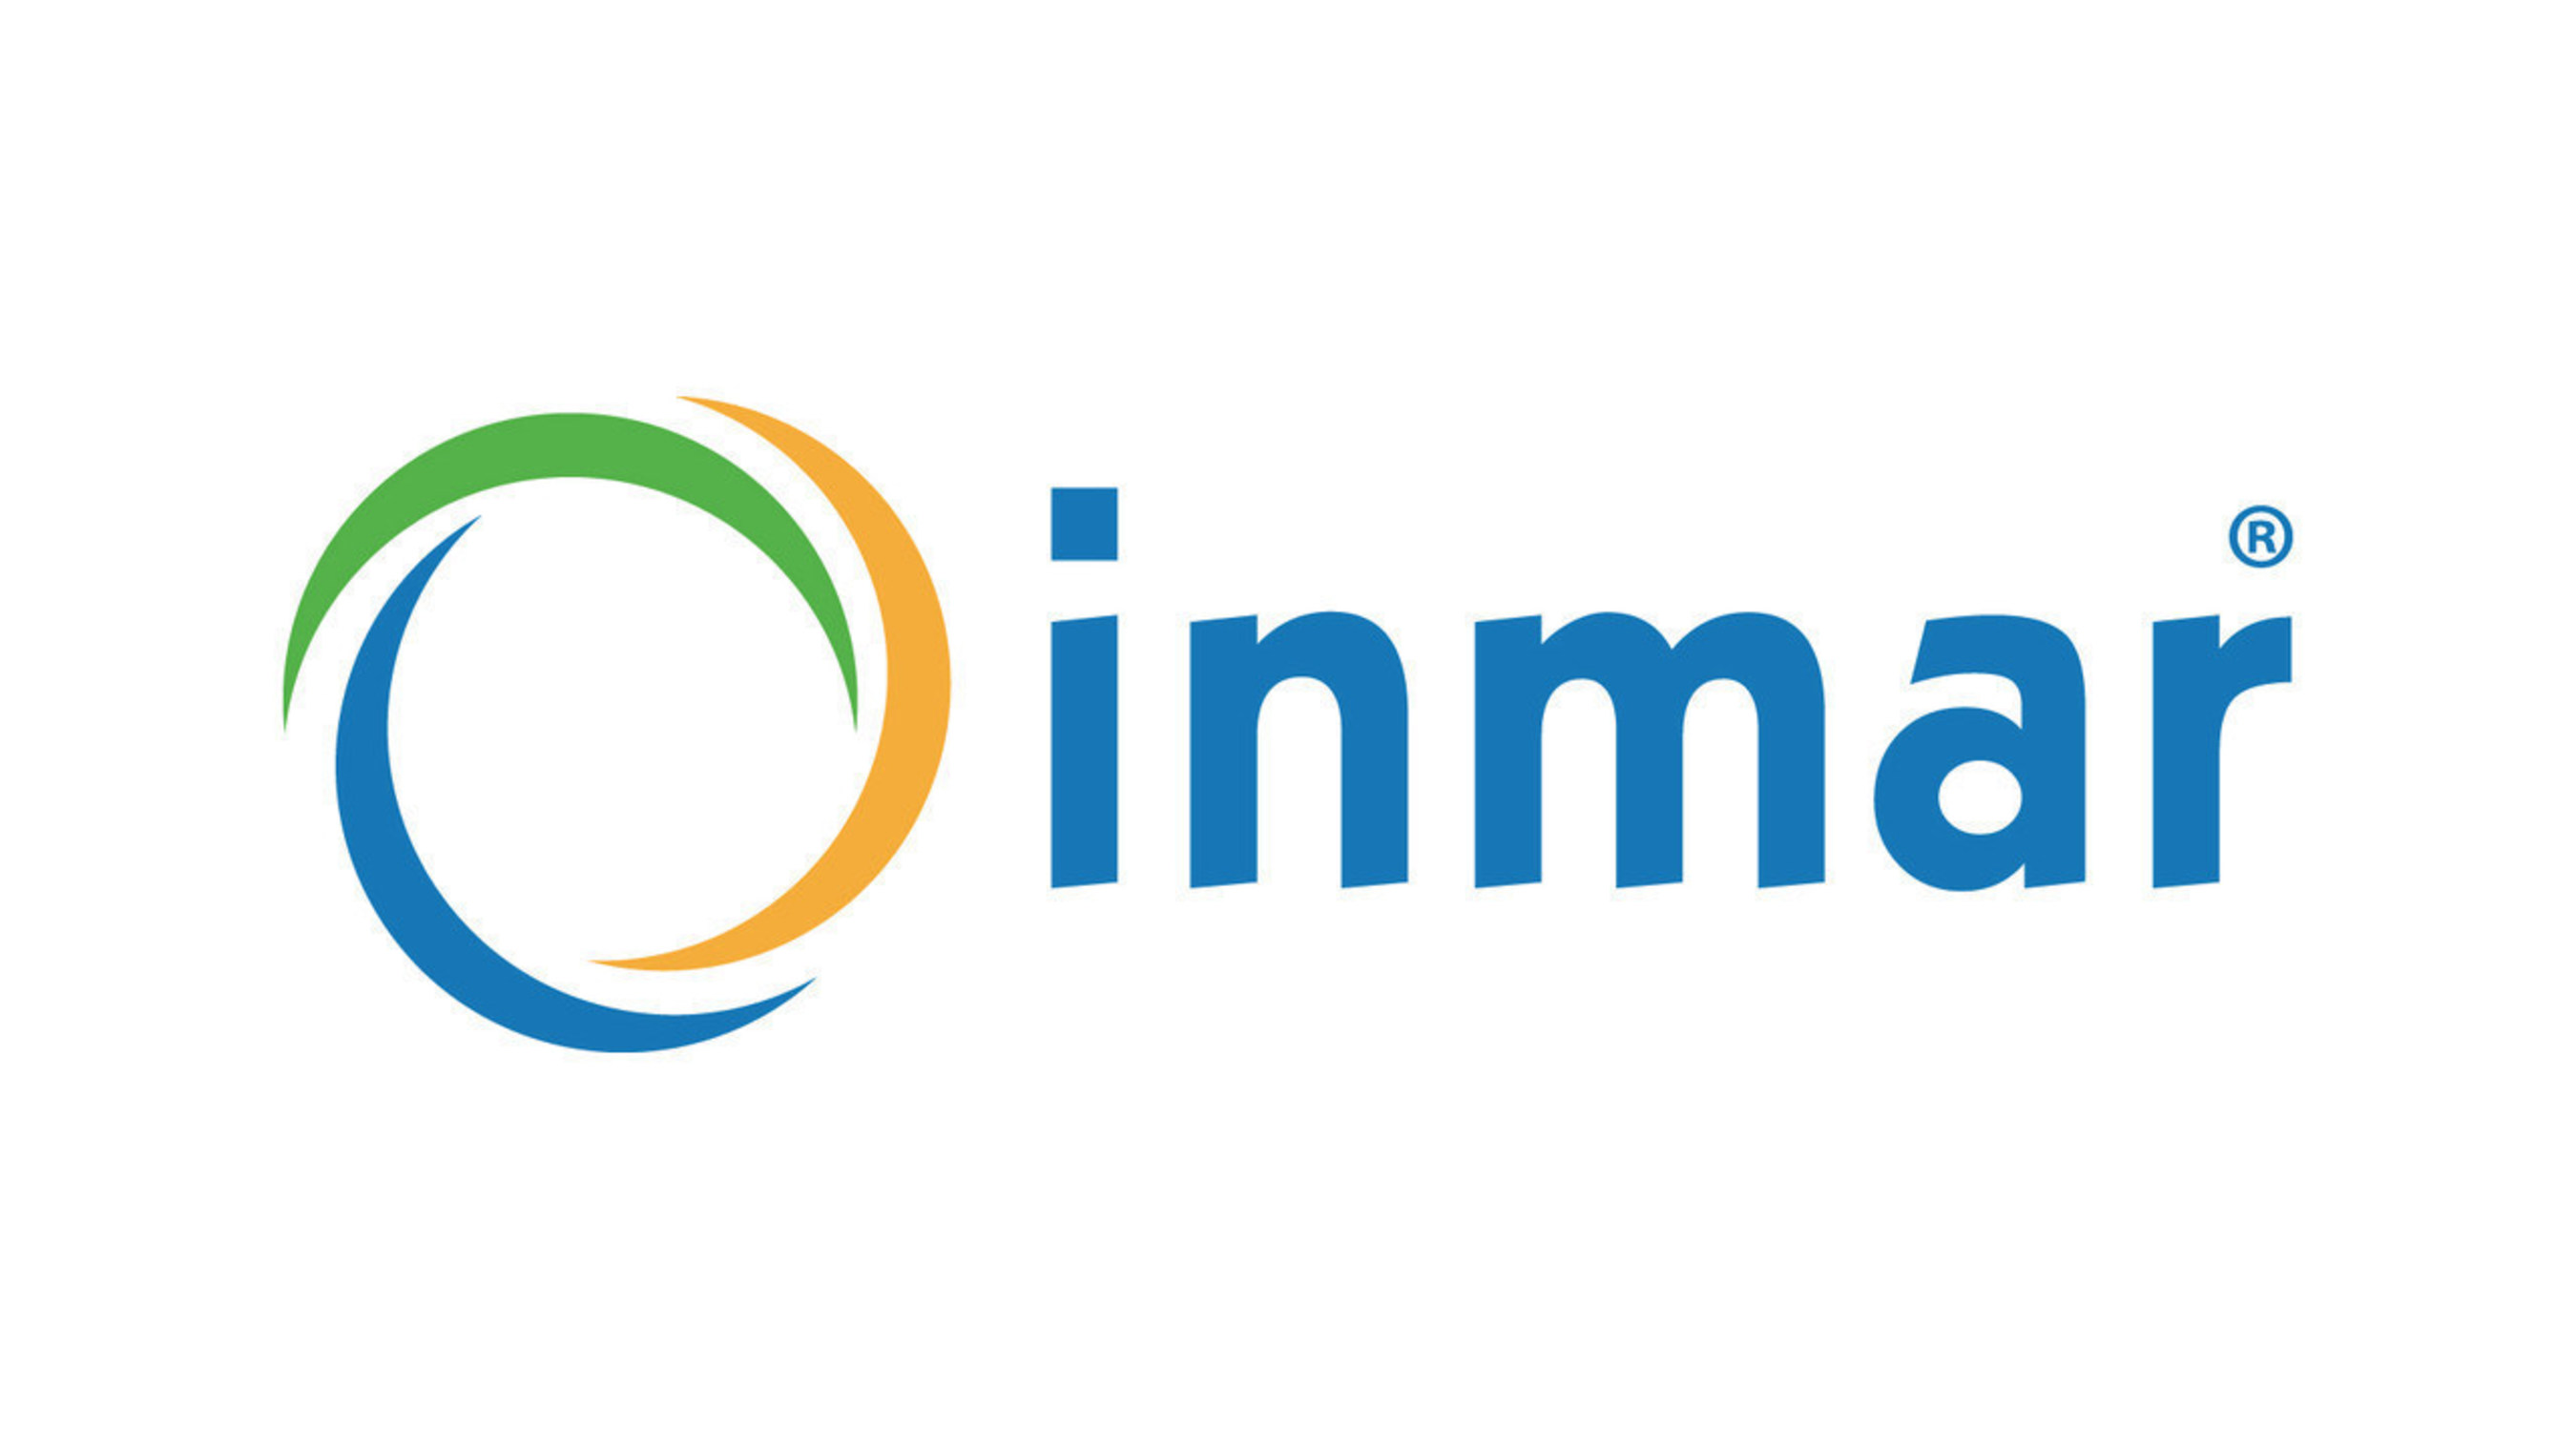 Inmar develops technology and uses advanced data analytics to make commerce work smarter.